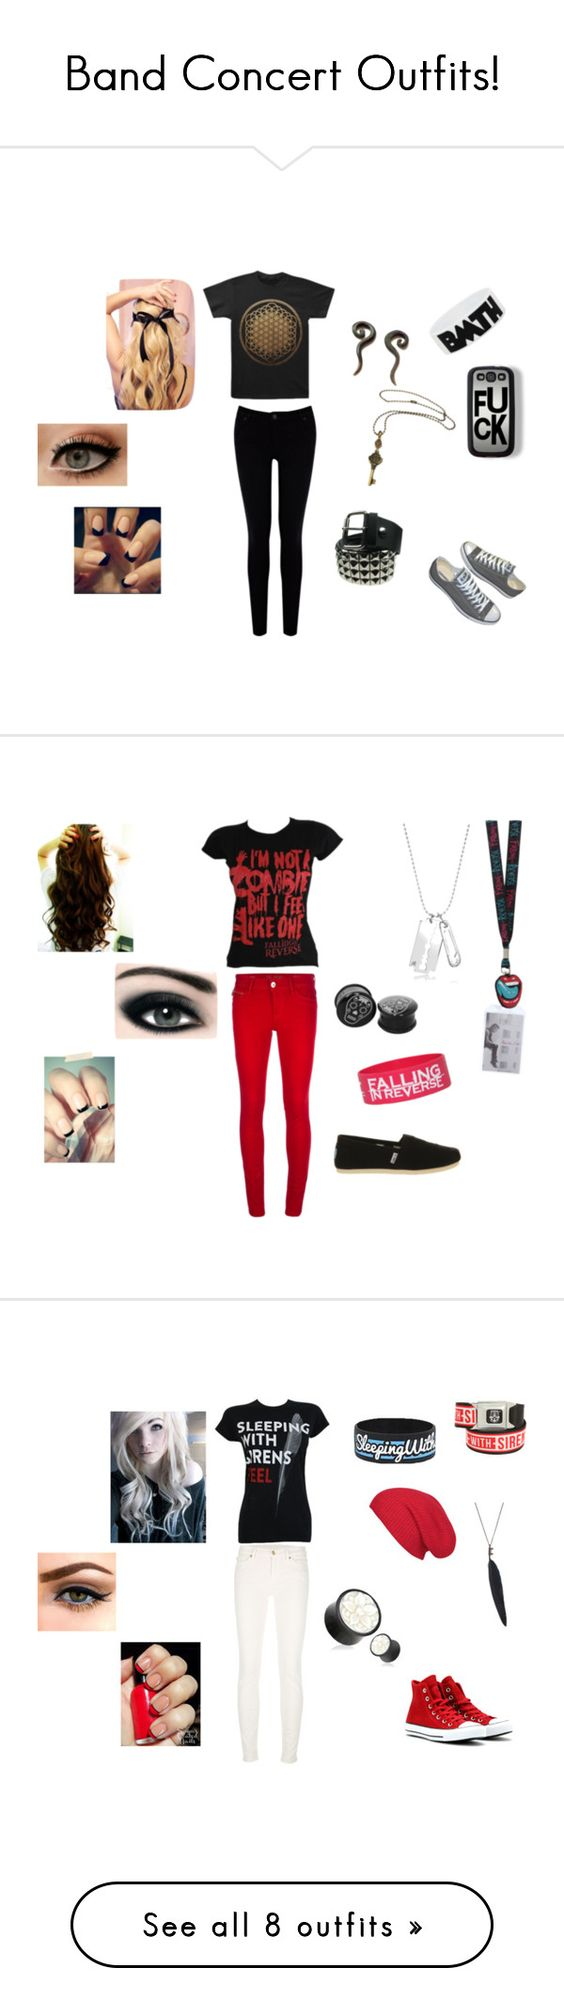 """""""Band Concert Outfits!"""" by duckyouu ❤ liked on Polyvore featuring Warehouse, Hot Tools, Zero Gravity, DL1961 Premium Denim, TOMS, McQ by Alexander McQueen, Max Factor, 7 For All Mankind, Converse and Ann Demeulemeester"""